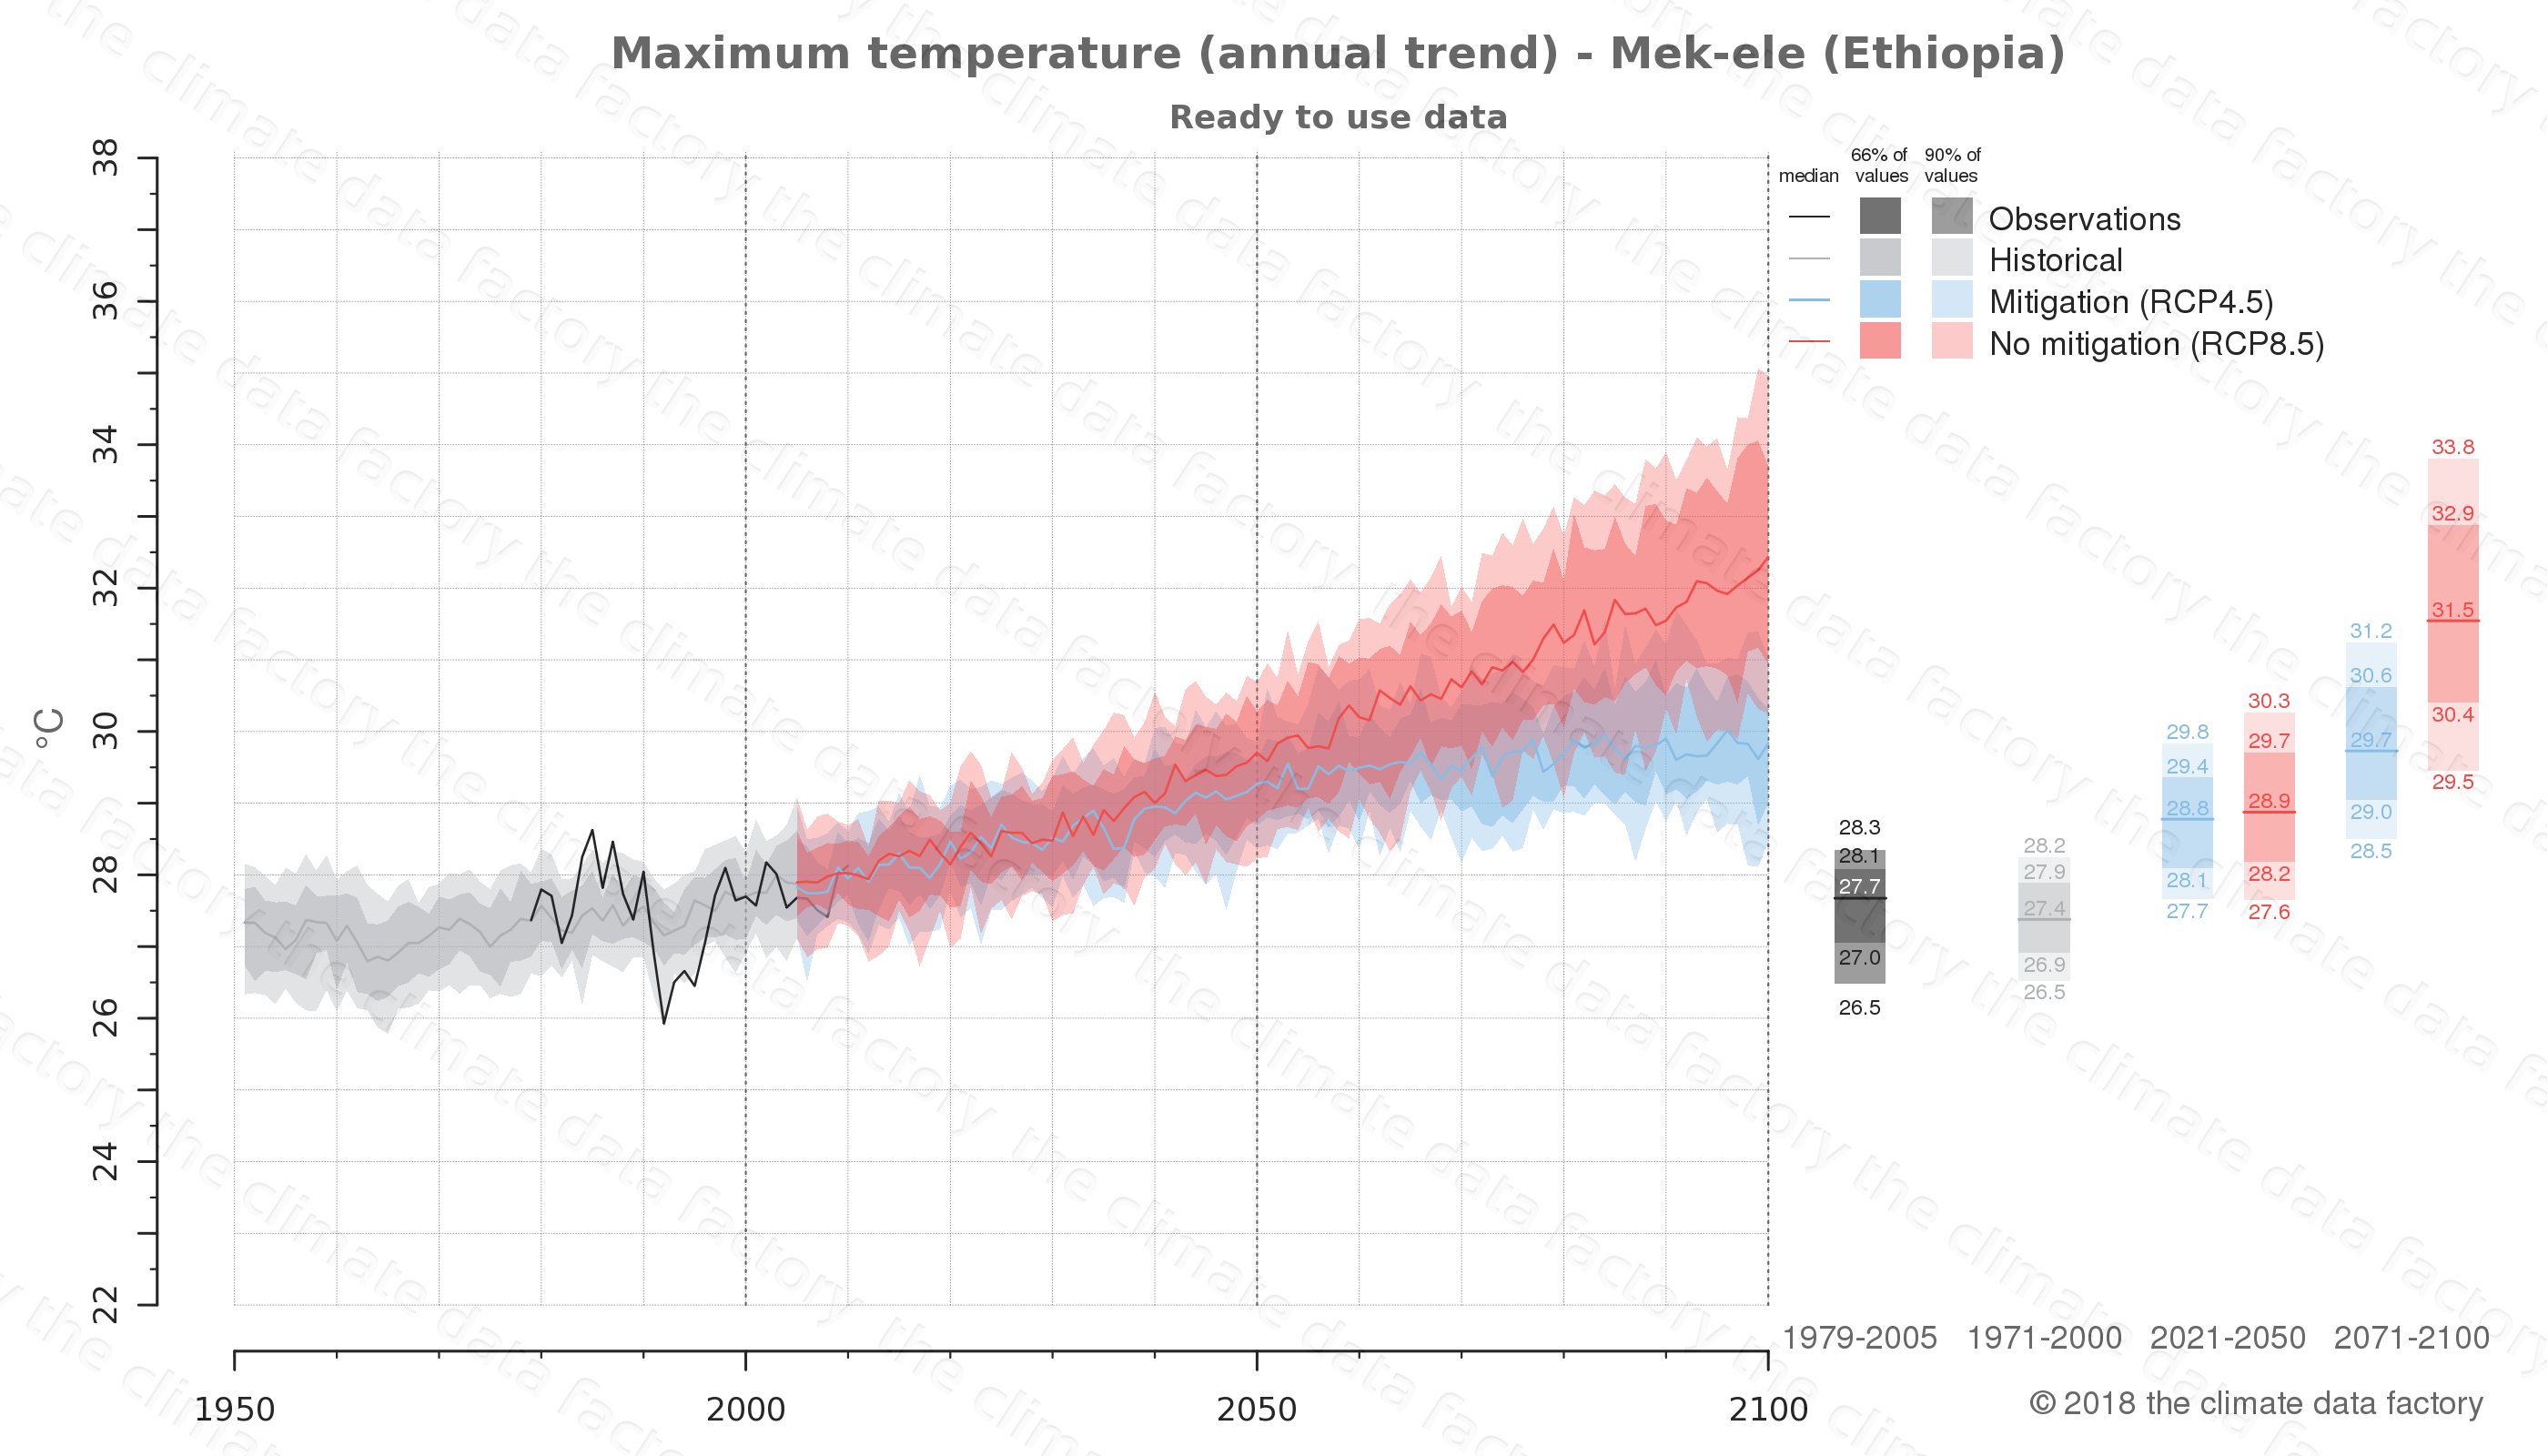 climate change data policy adaptation climate graph city data maximum-temperature mek-ele ethiopia